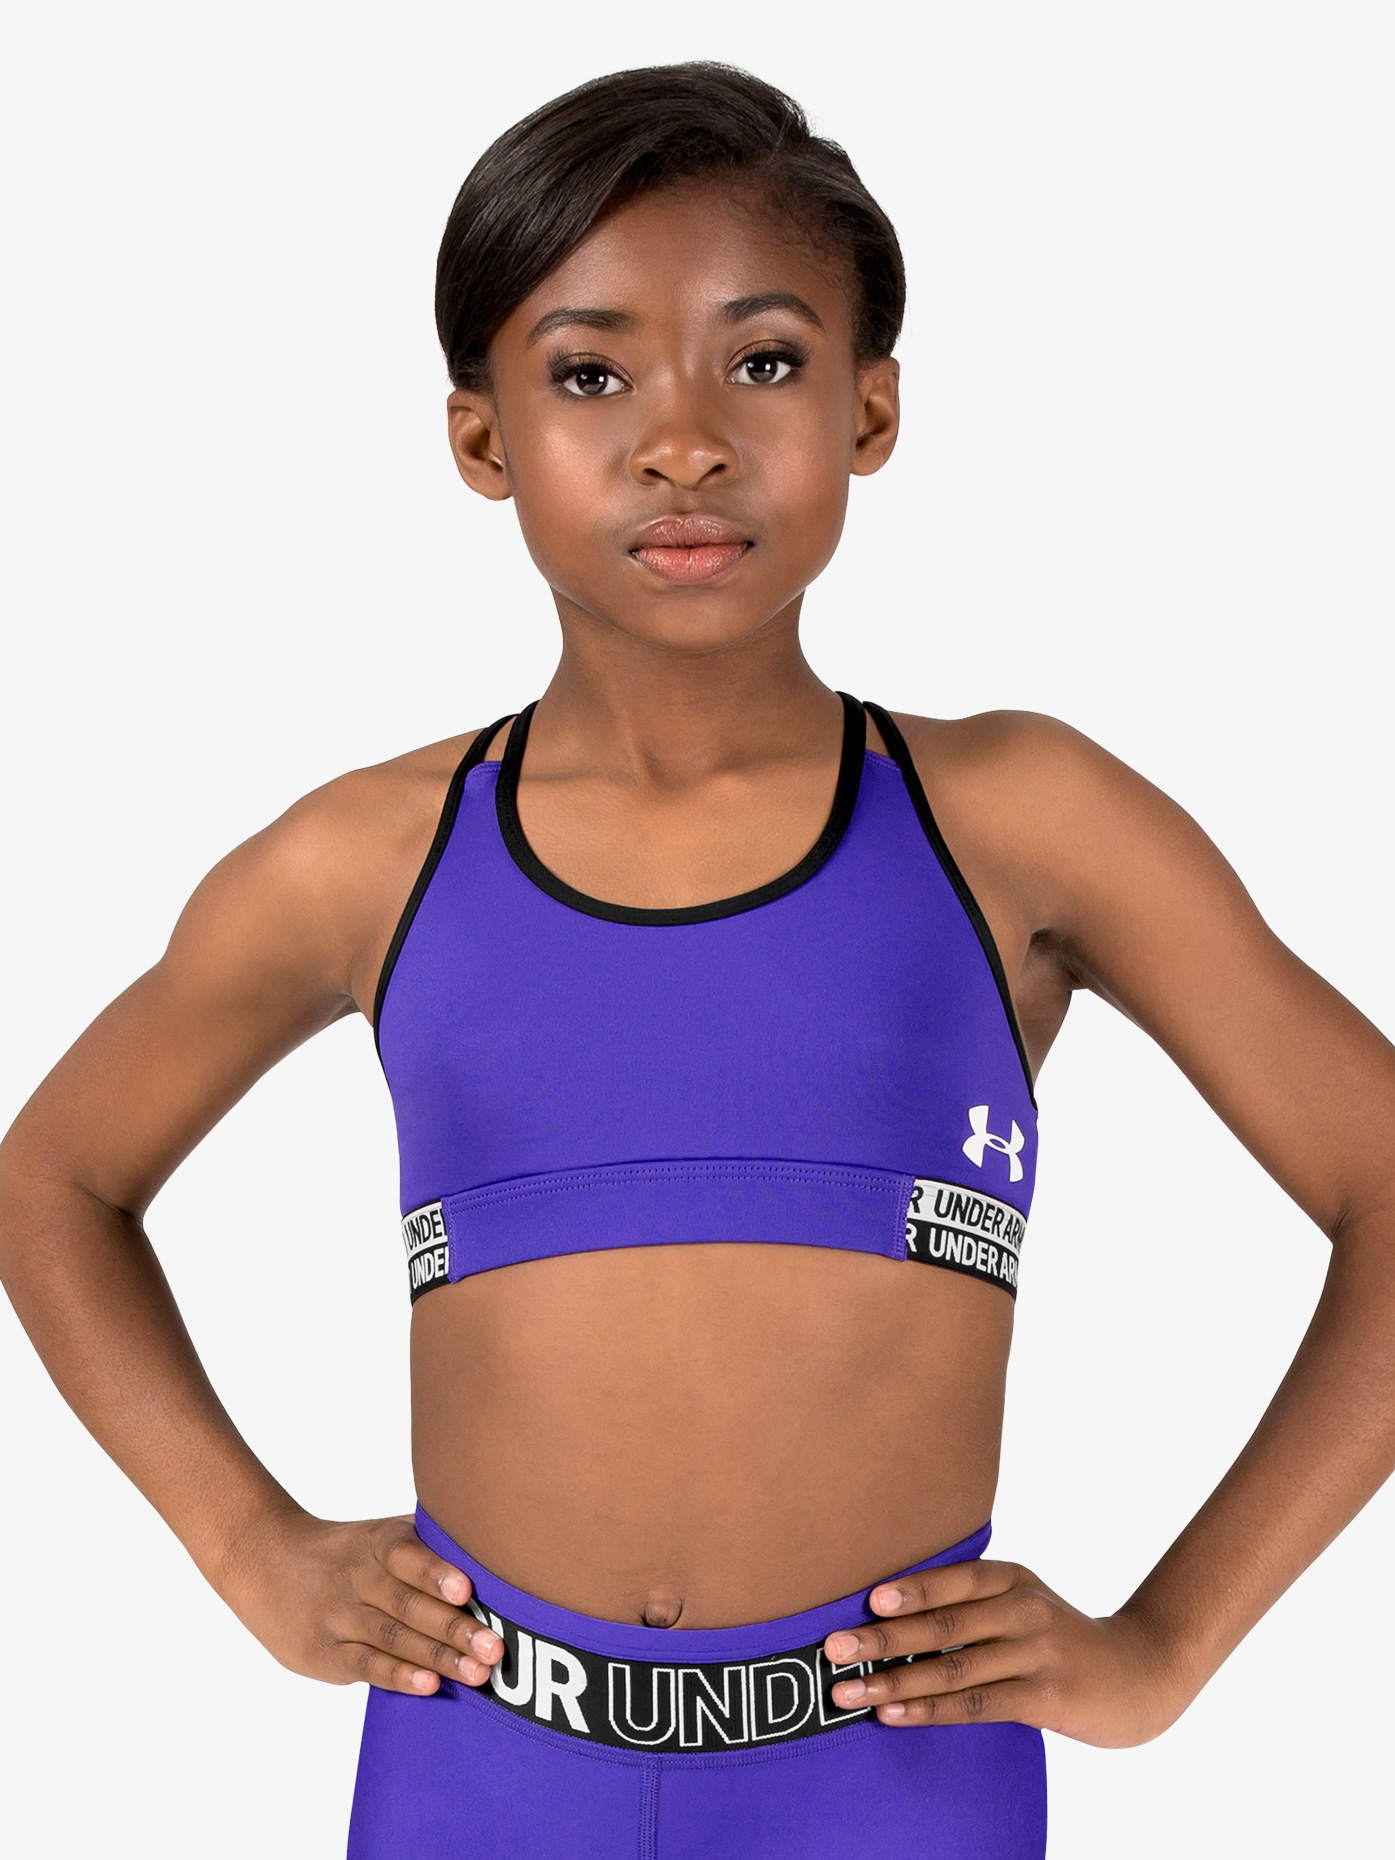 Under Armour Girls Solid Colored Split Camisole Racerback Sports Bra 1305726